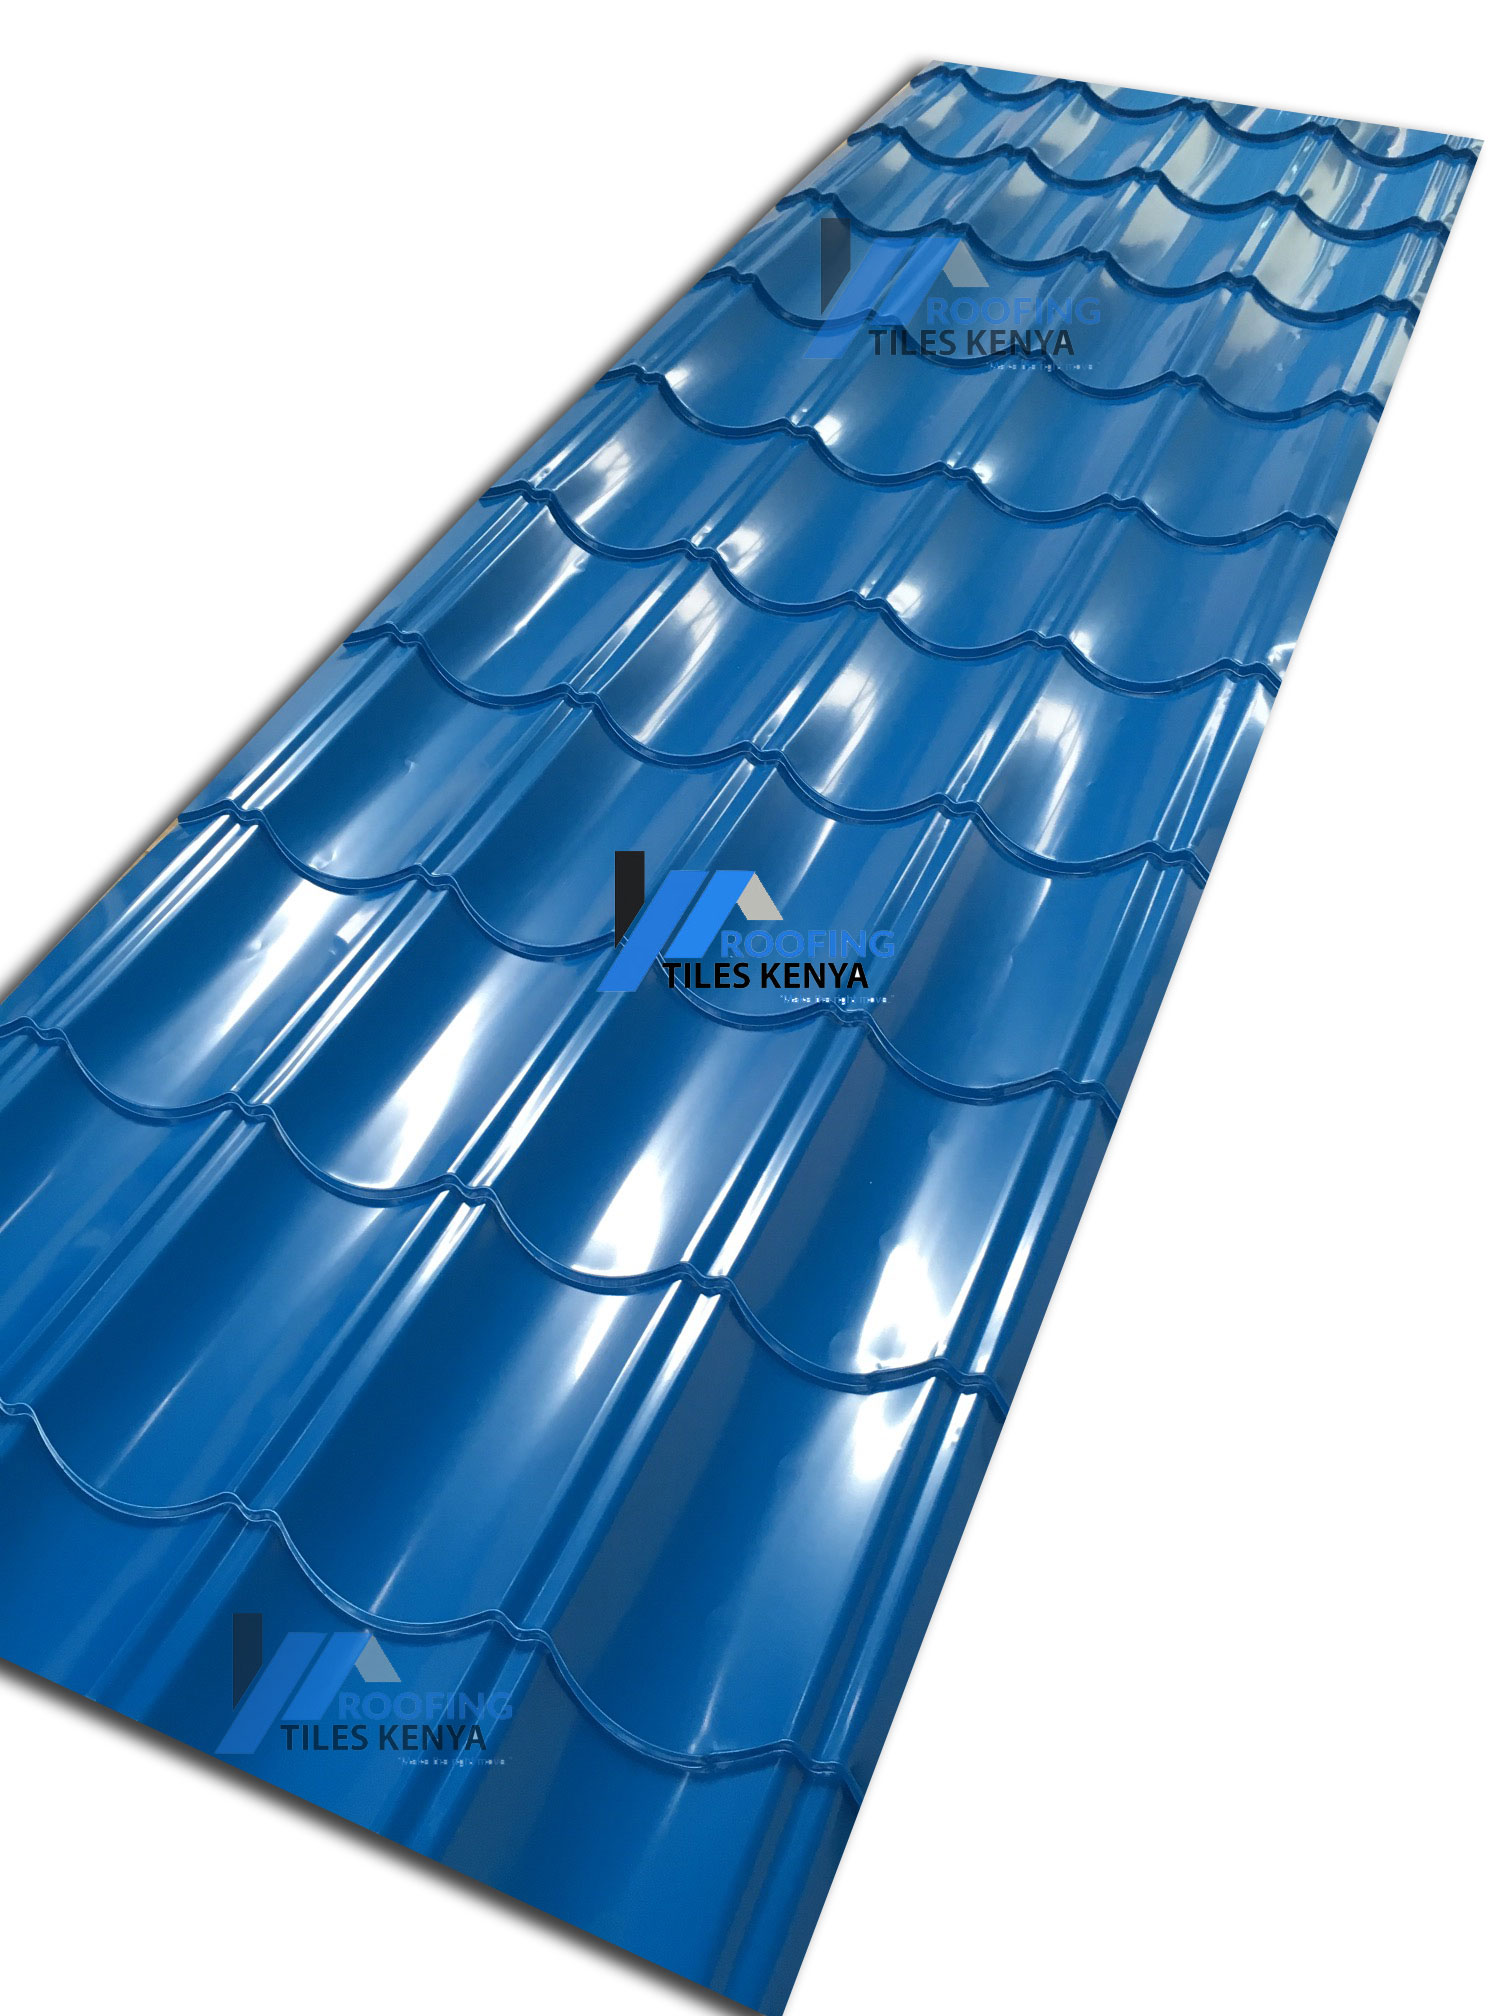 Blue Versatile Roof- Roofing Tiles Kenya